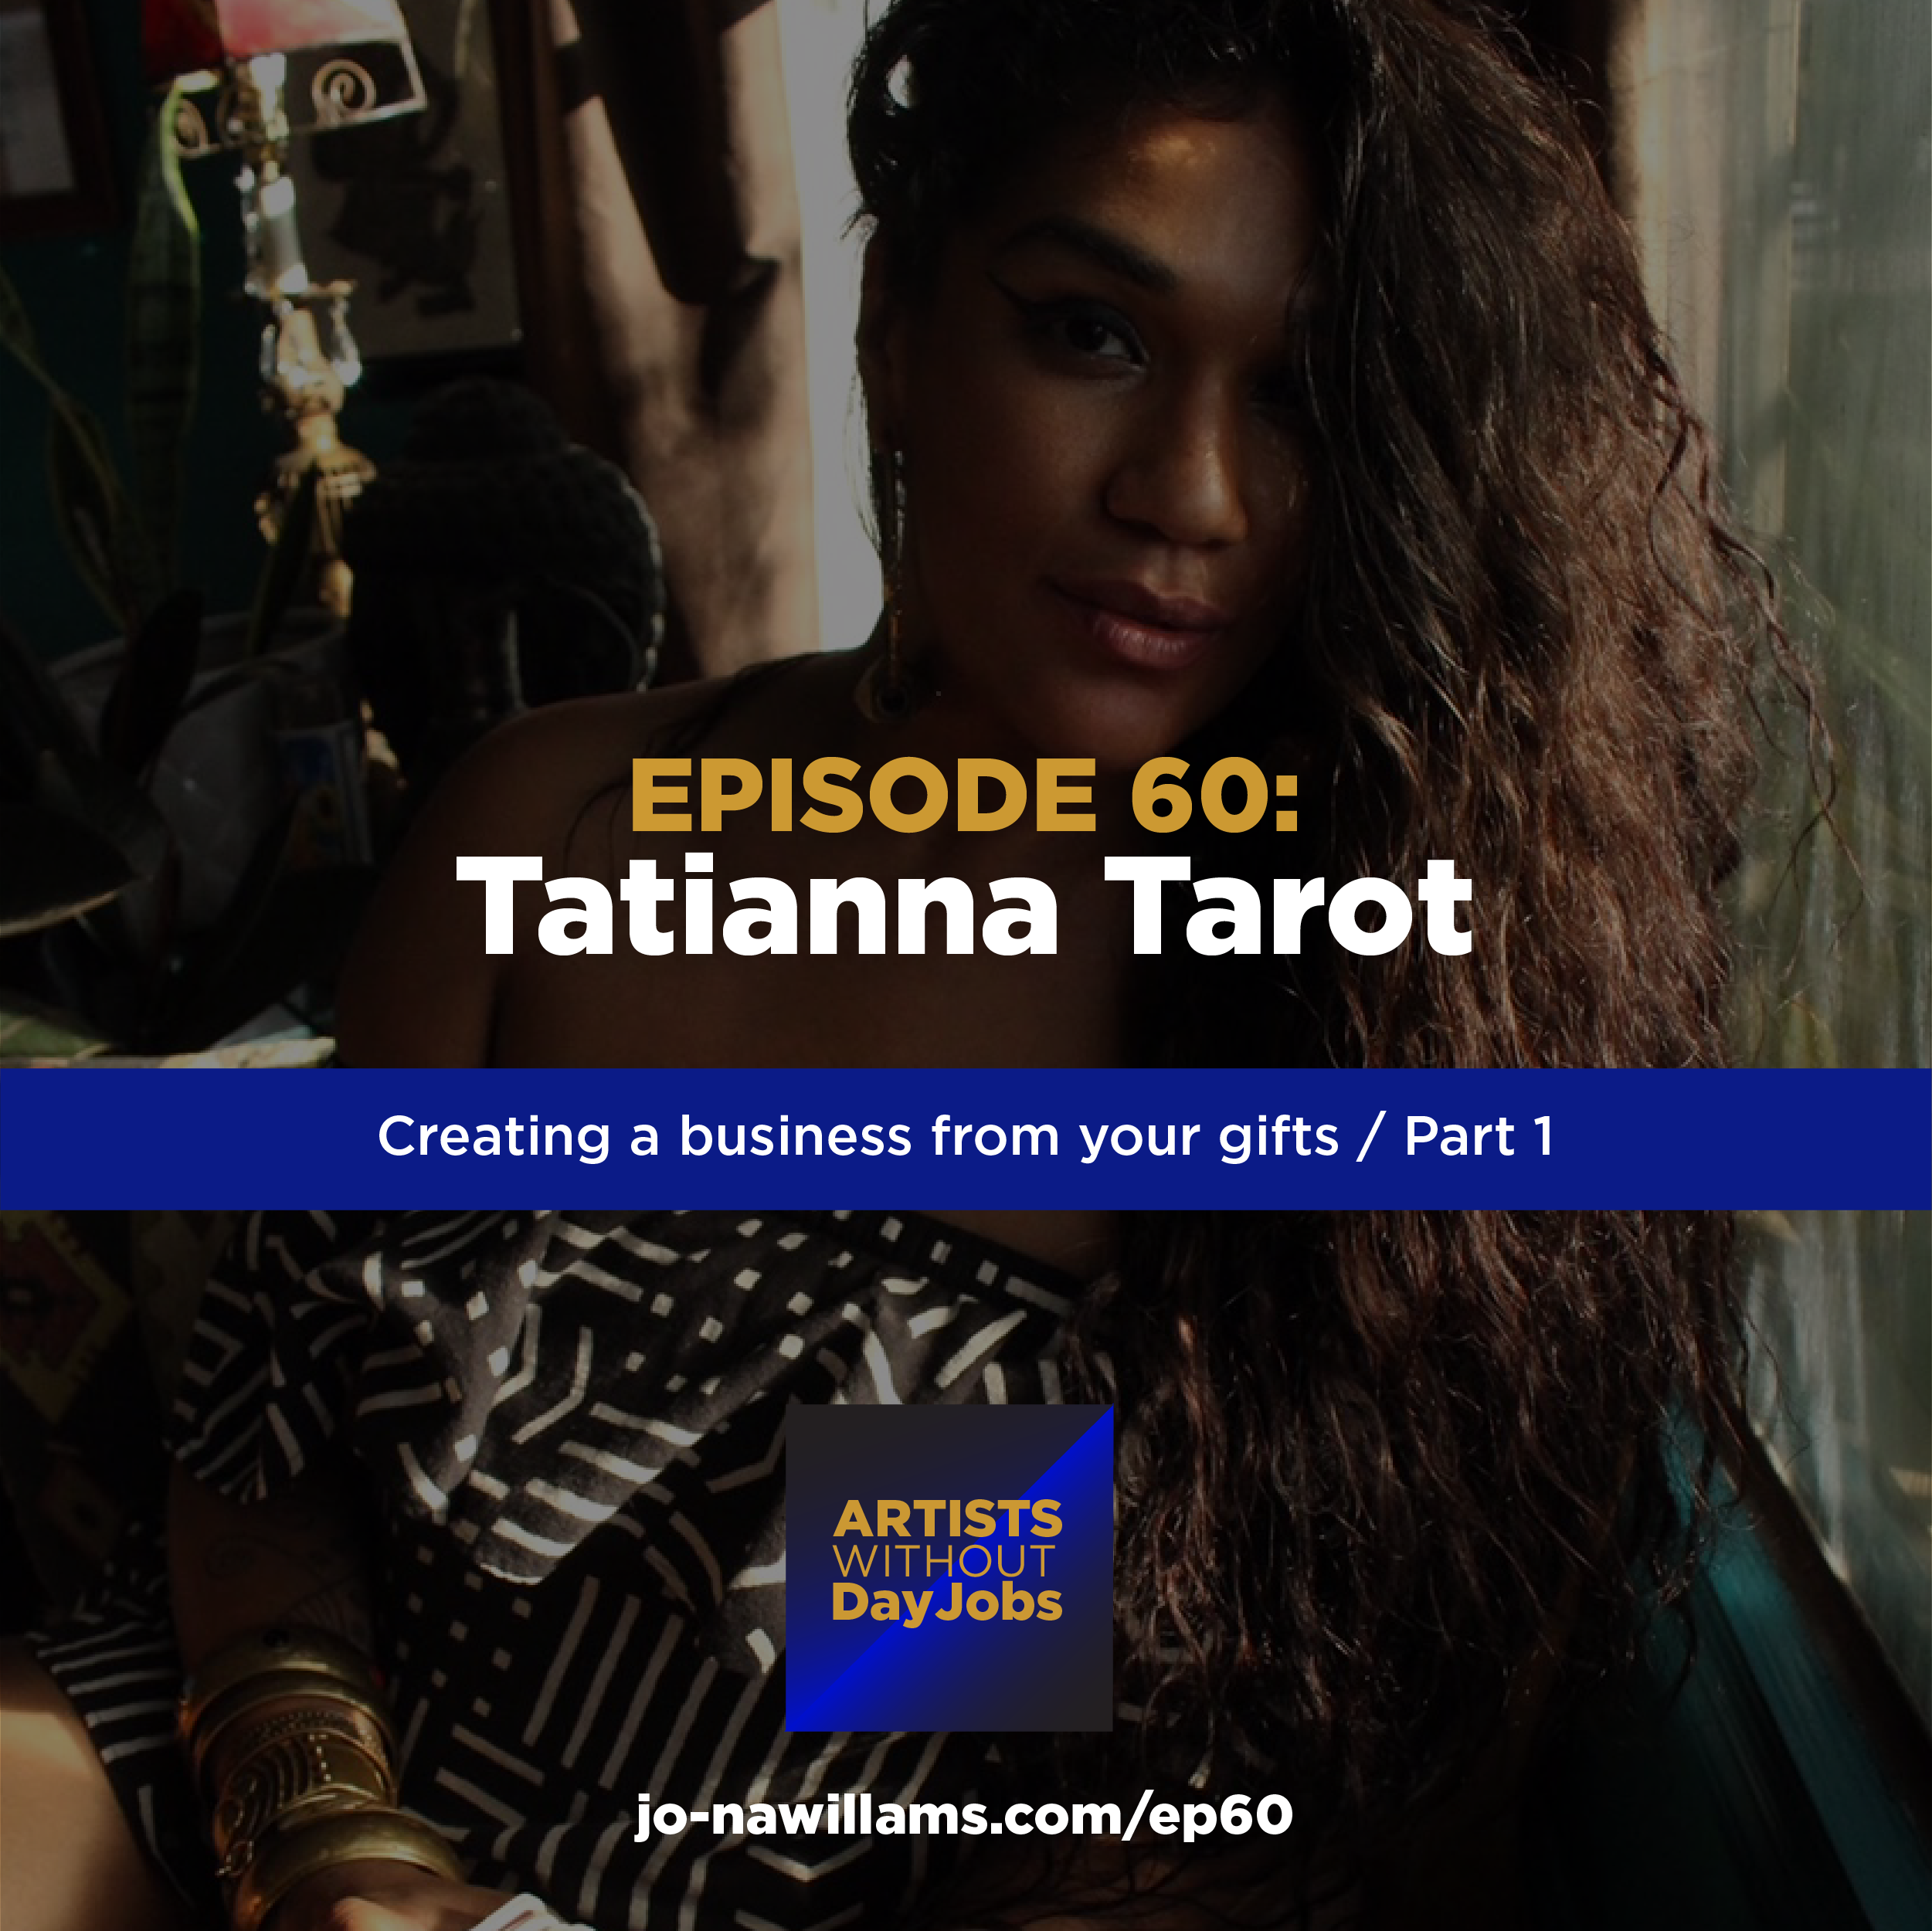 EP 60: Creating a business from your gifts w/ Tatianna Tarot, Pt. 1